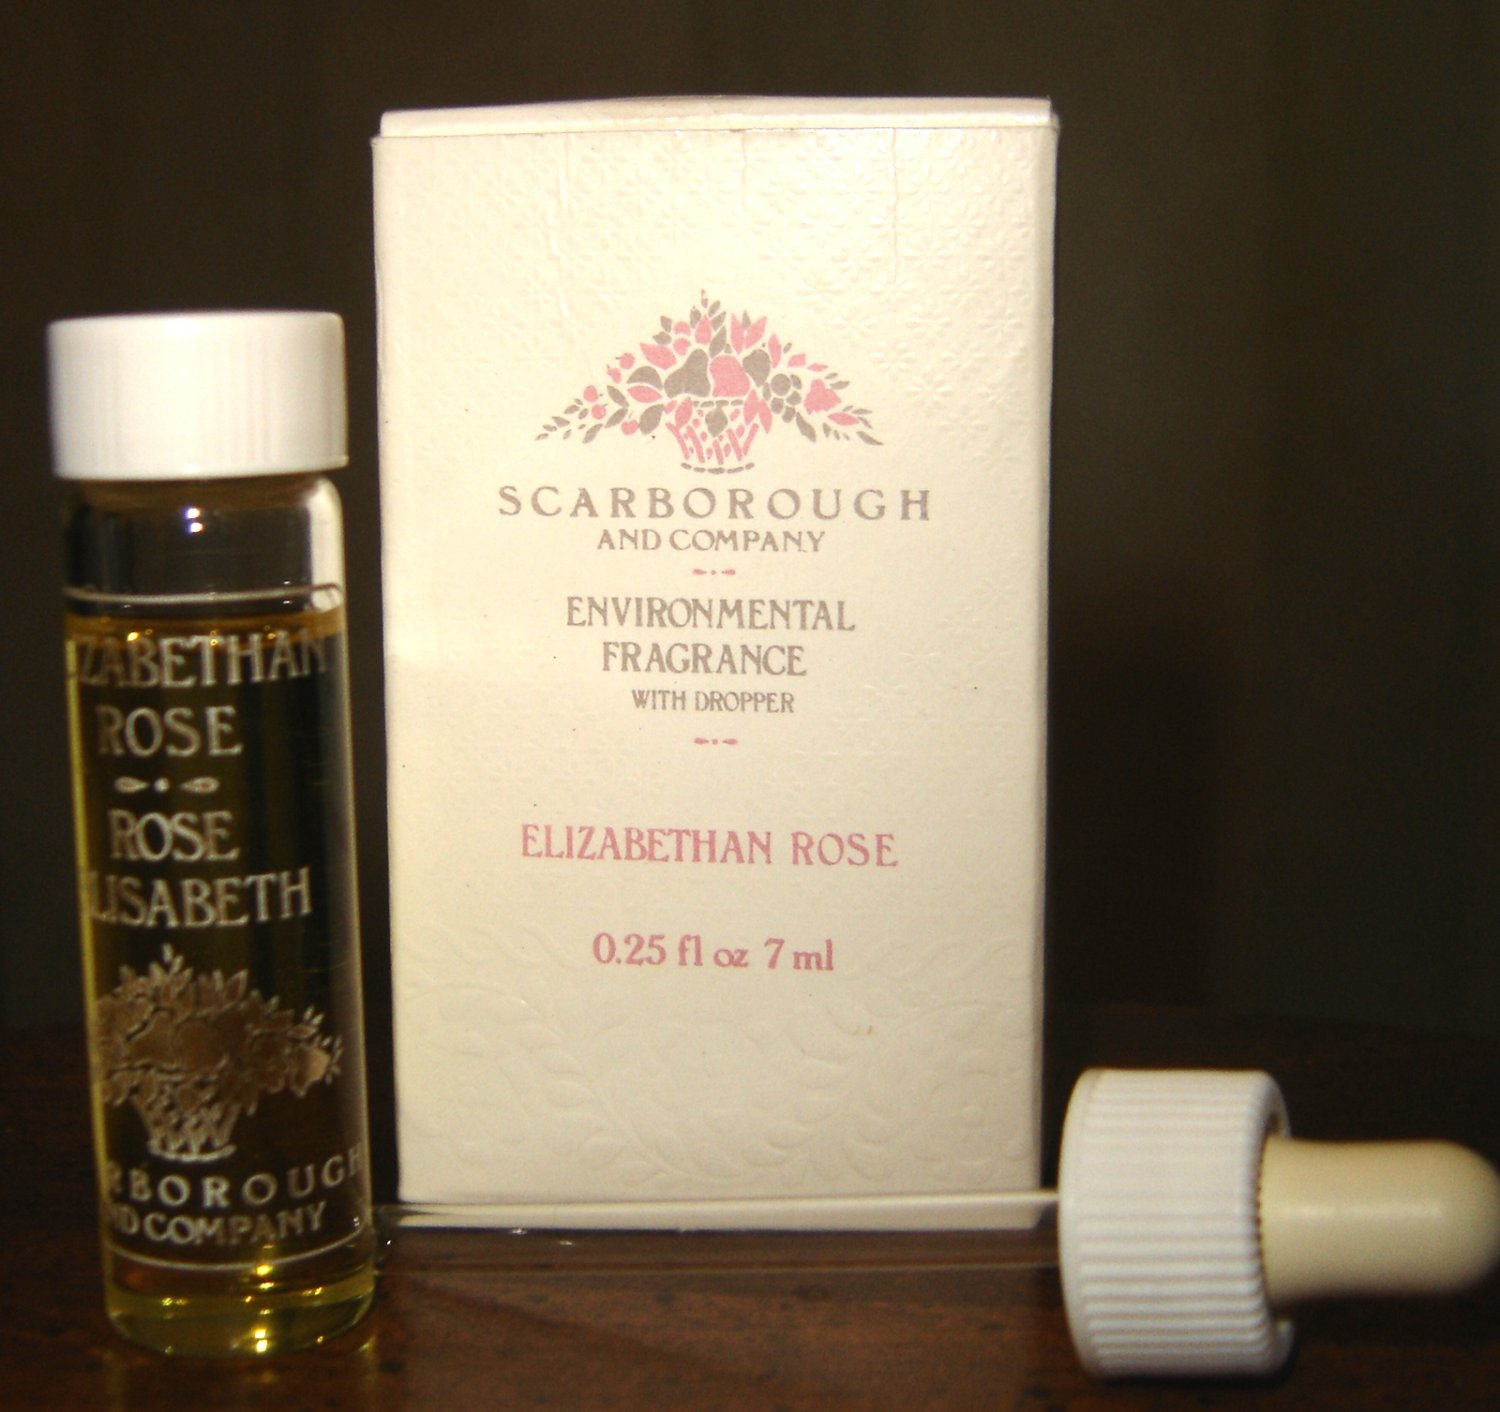 Scarborough and Company Elizabethan Rose Environmental Fragrance Oil (Vintage)